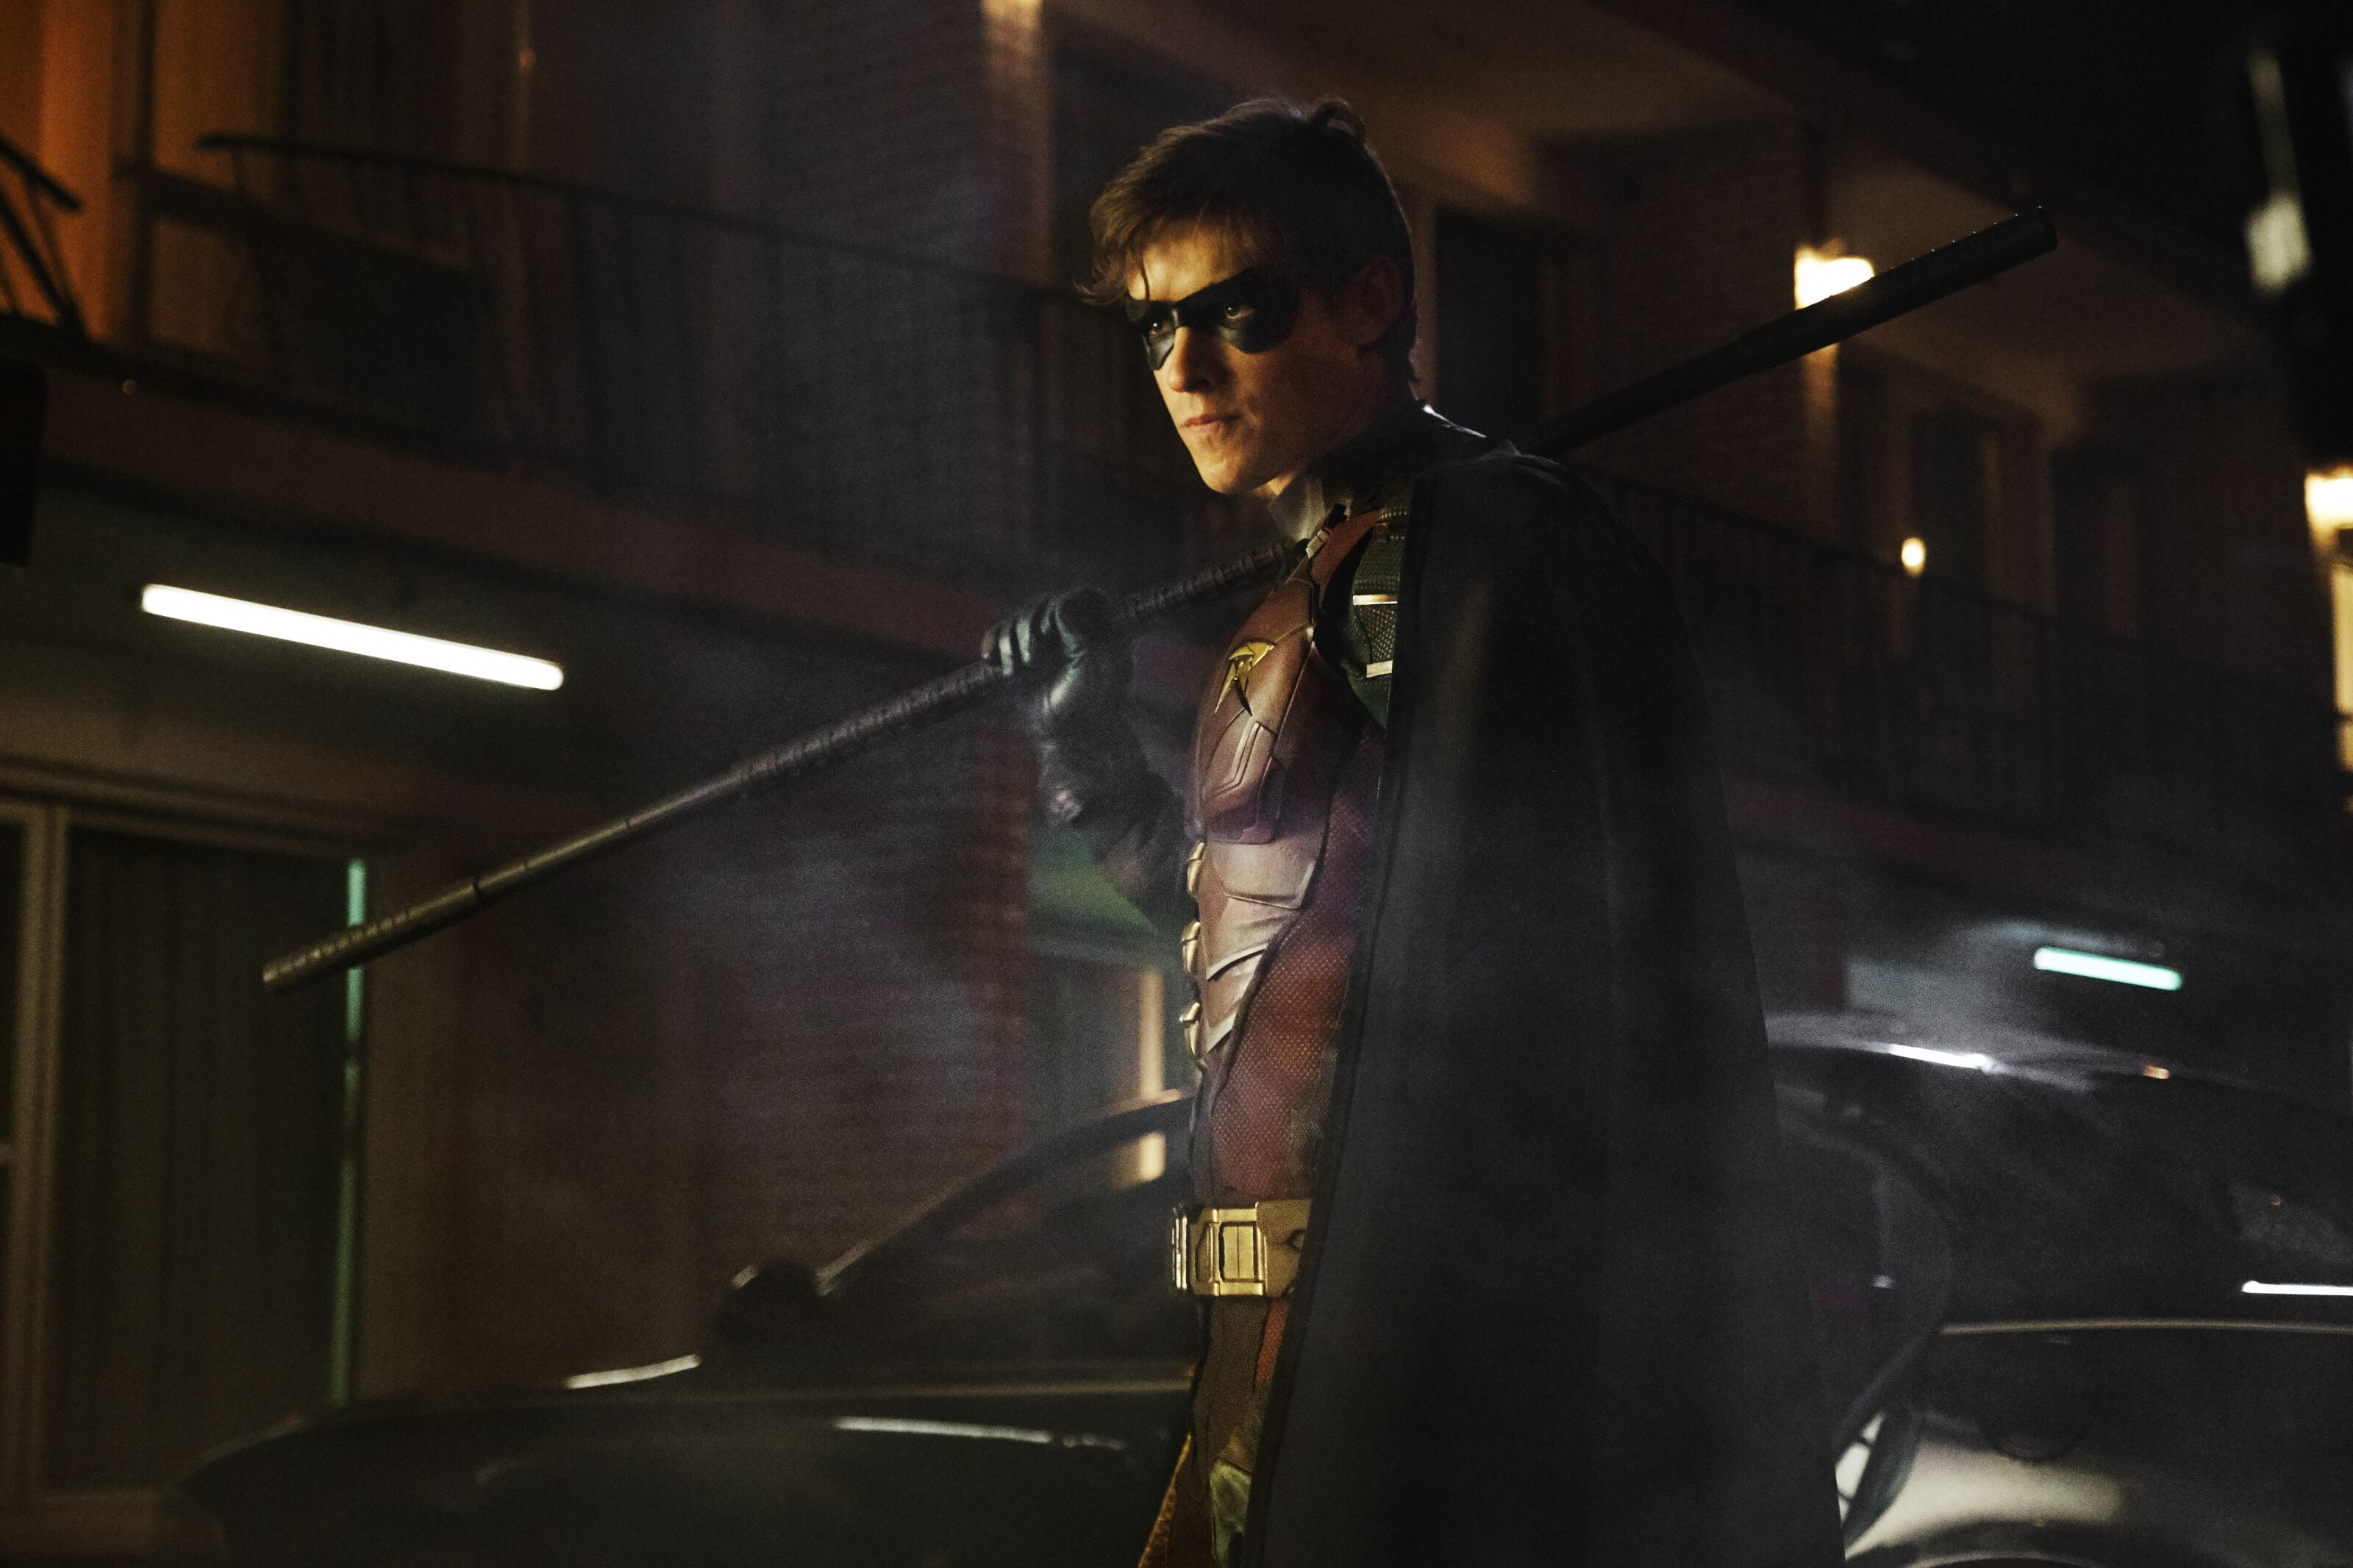 SDCC 2019: Titans season 2 release date has been announced